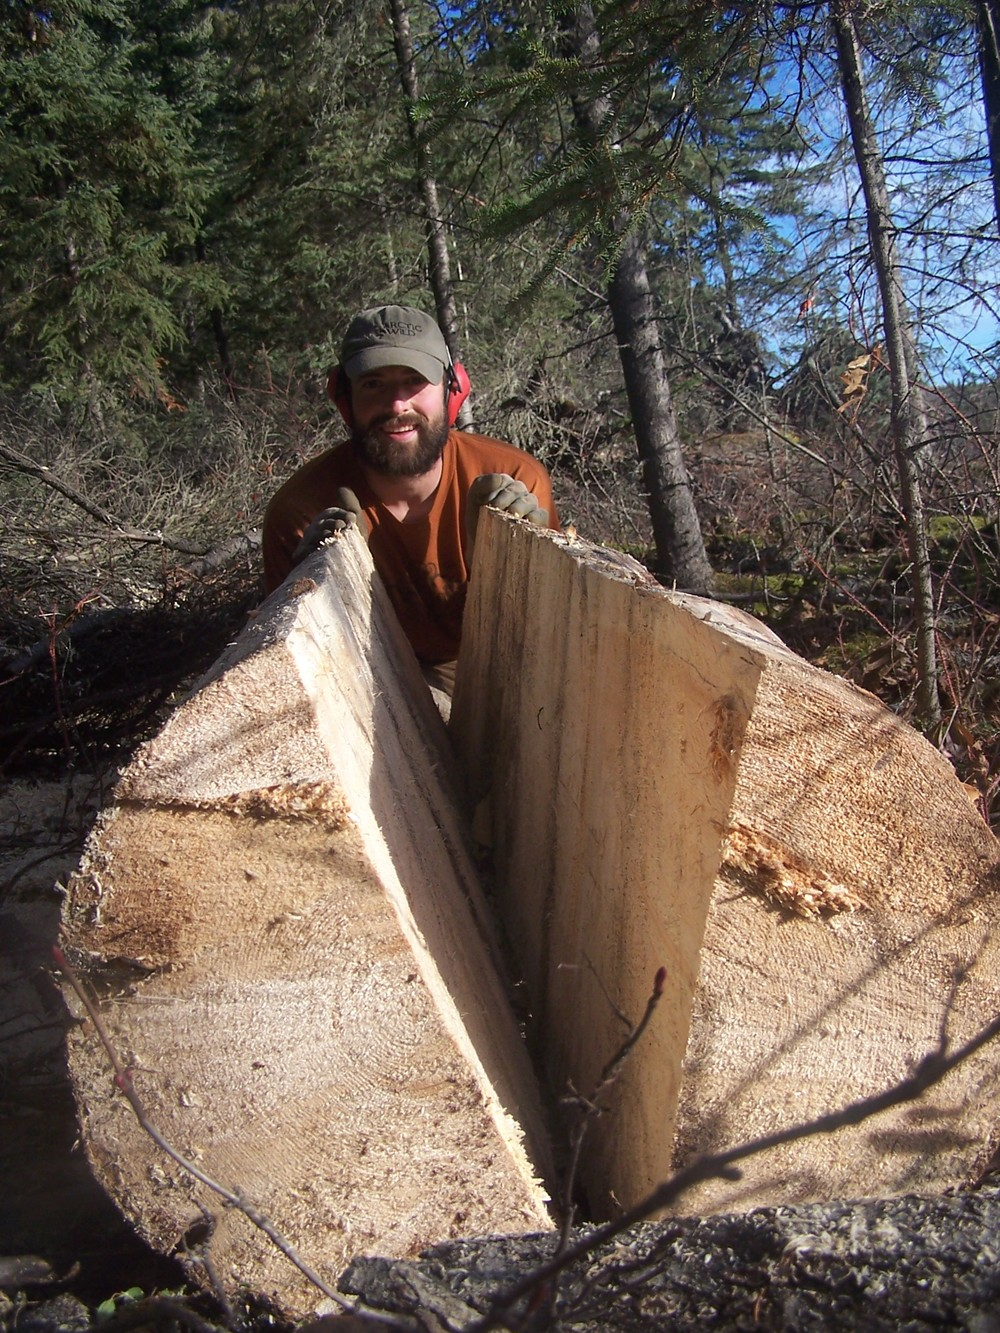 David split this large spruce with a small chainsaw.